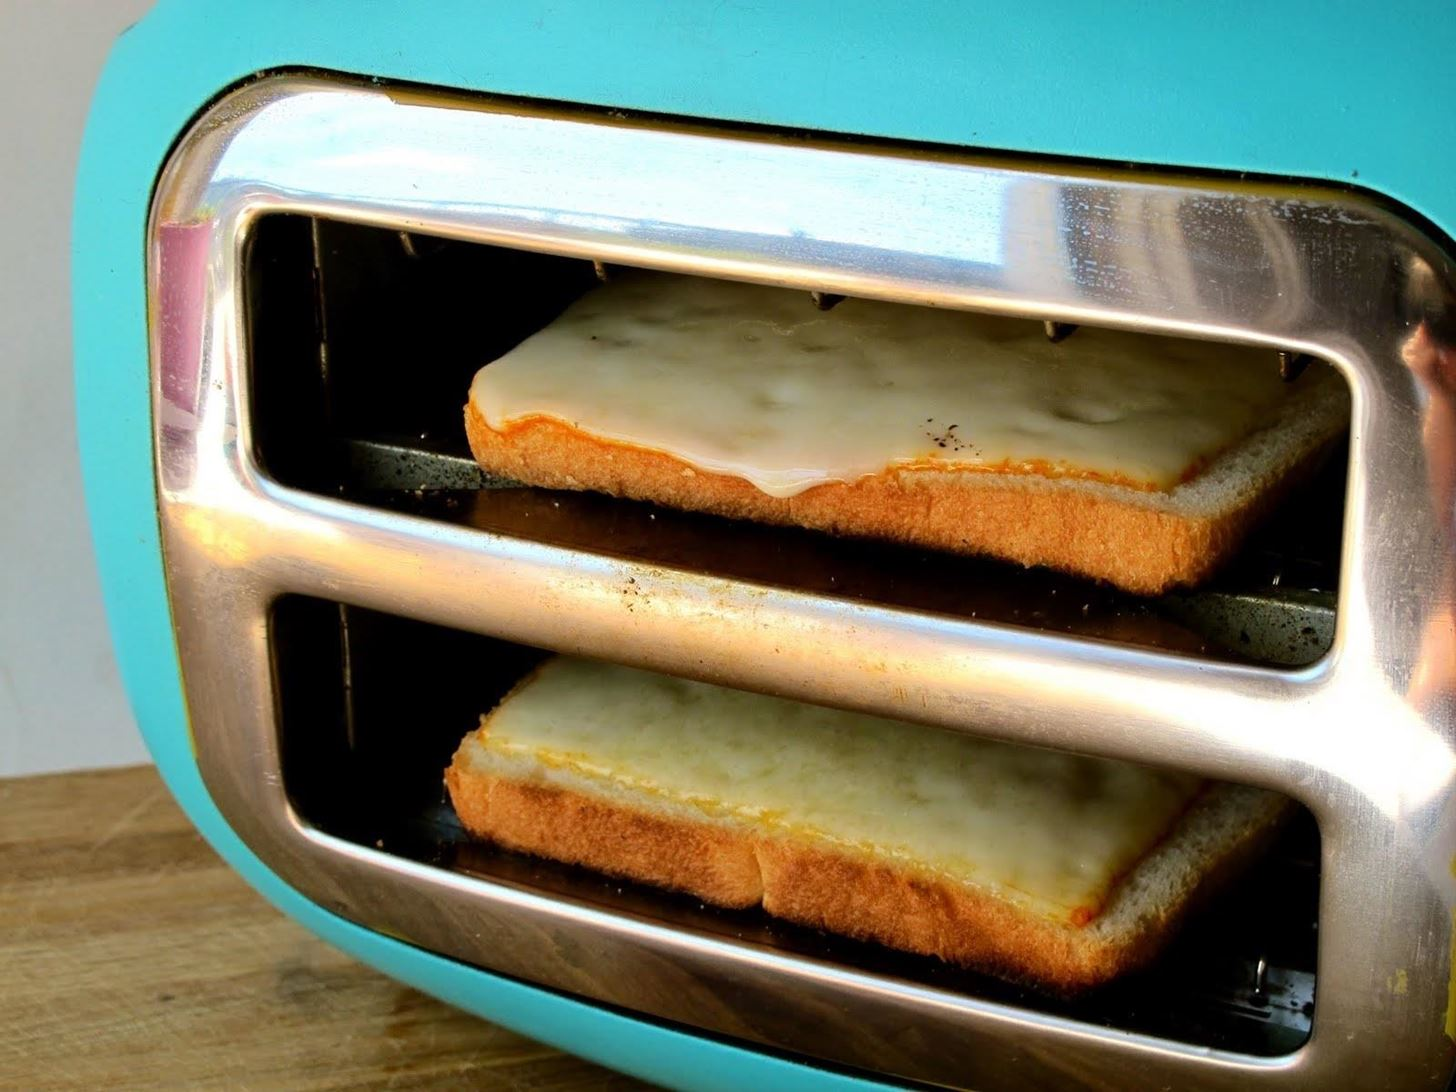 Method # 2: Tip The Toaster On Its Side